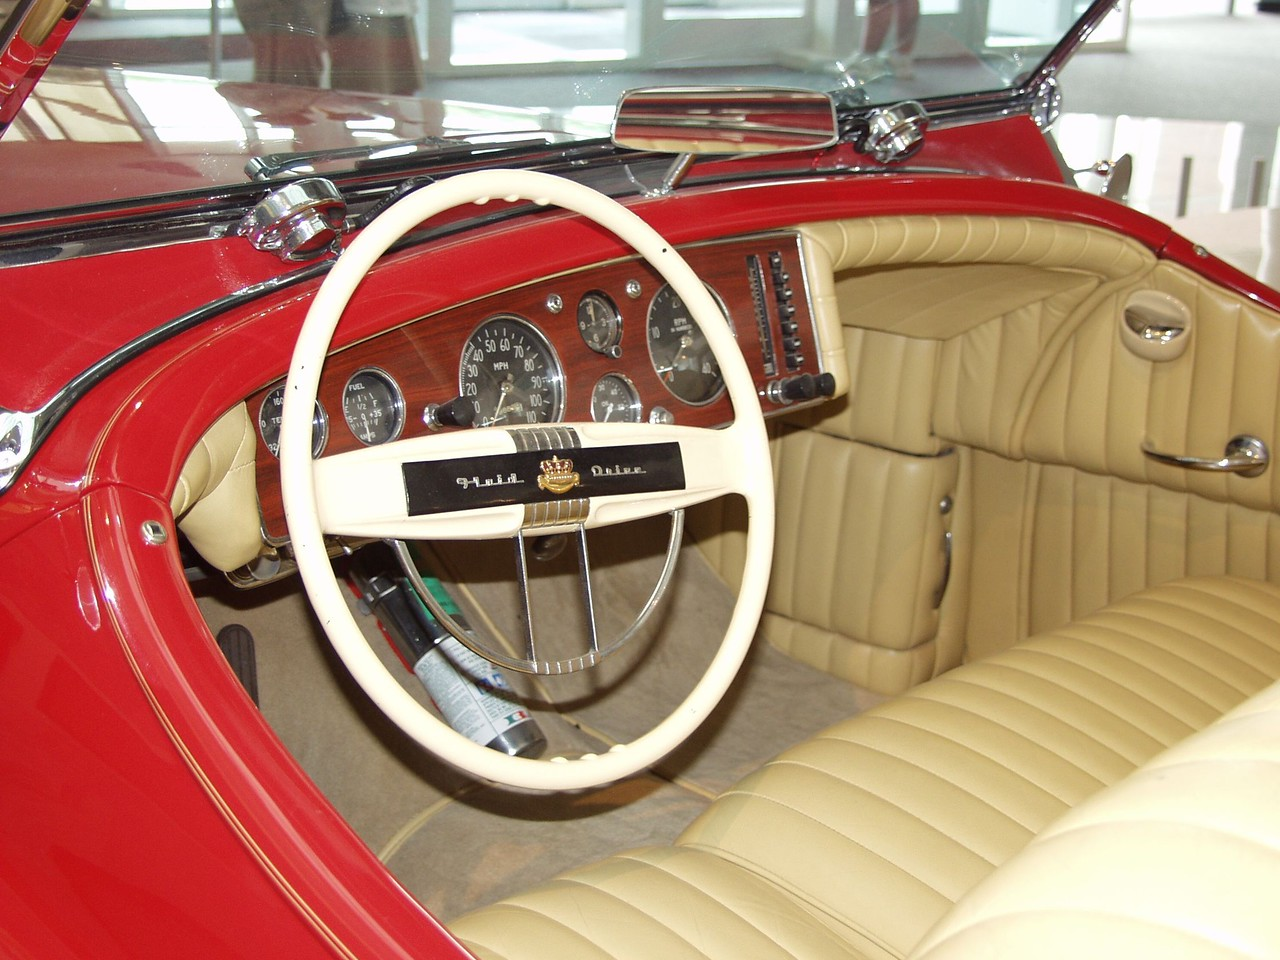 Interior of the 1941 Chrysler Newport dual cowl  phaeton.